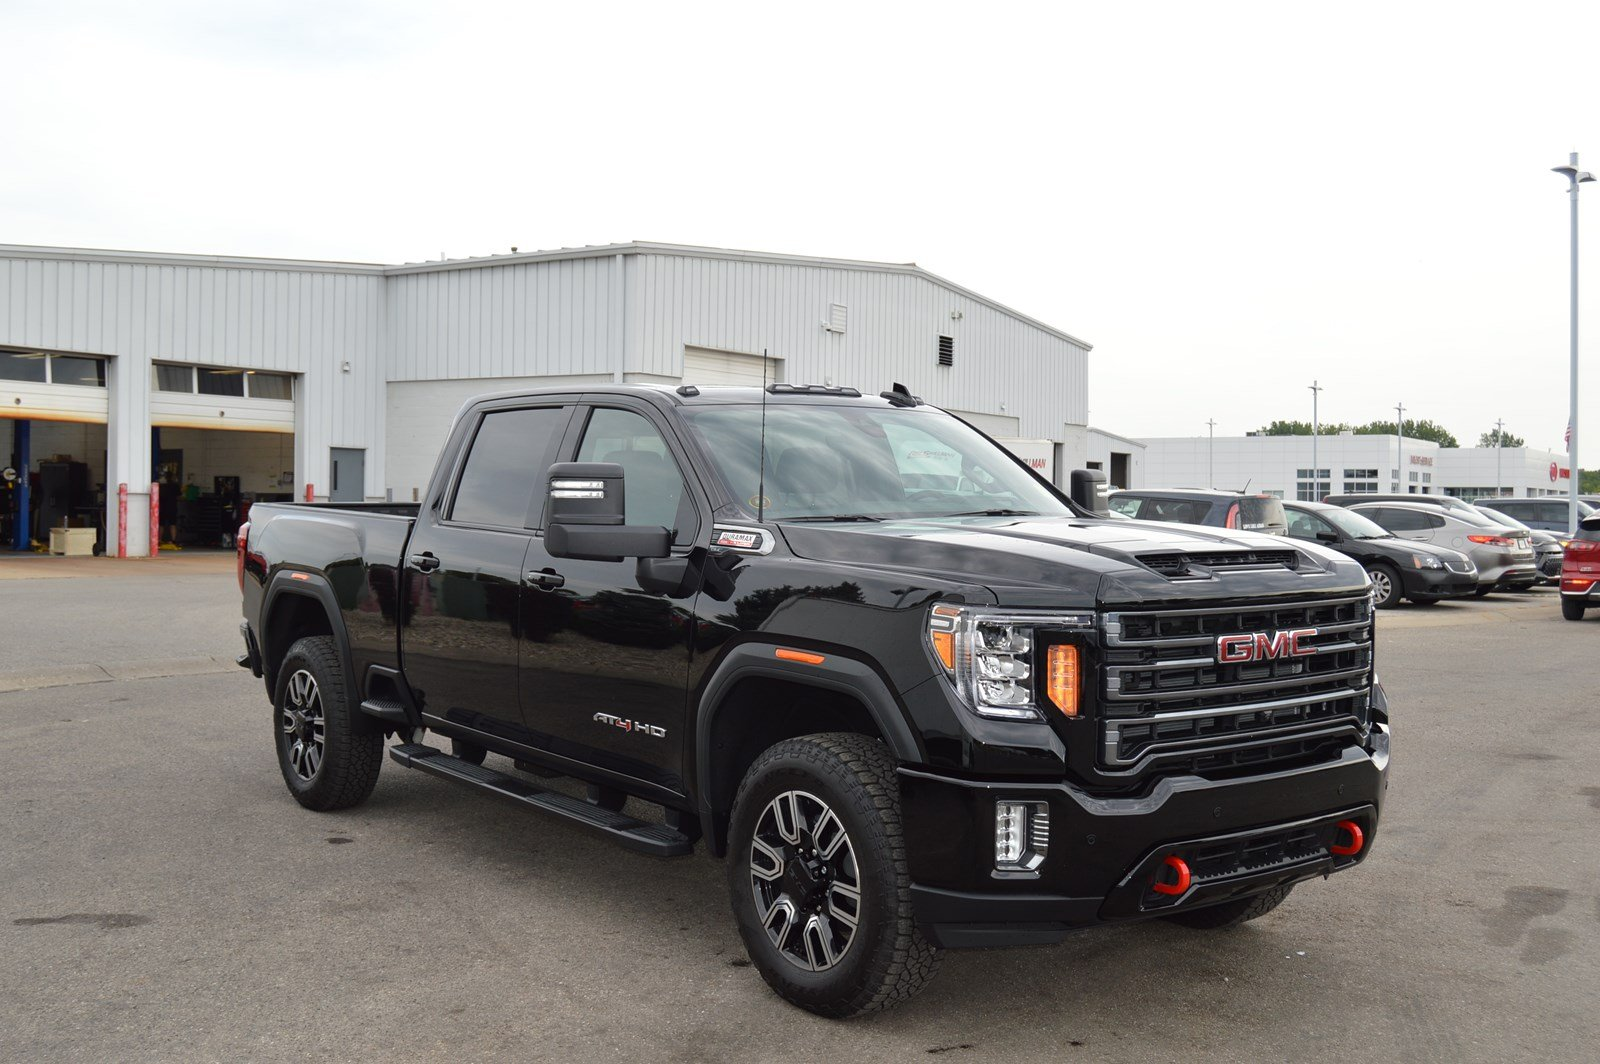 77 Gallery of Pics Of 2020 Gmc 2500 Ratings by Pics Of 2020 Gmc 2500